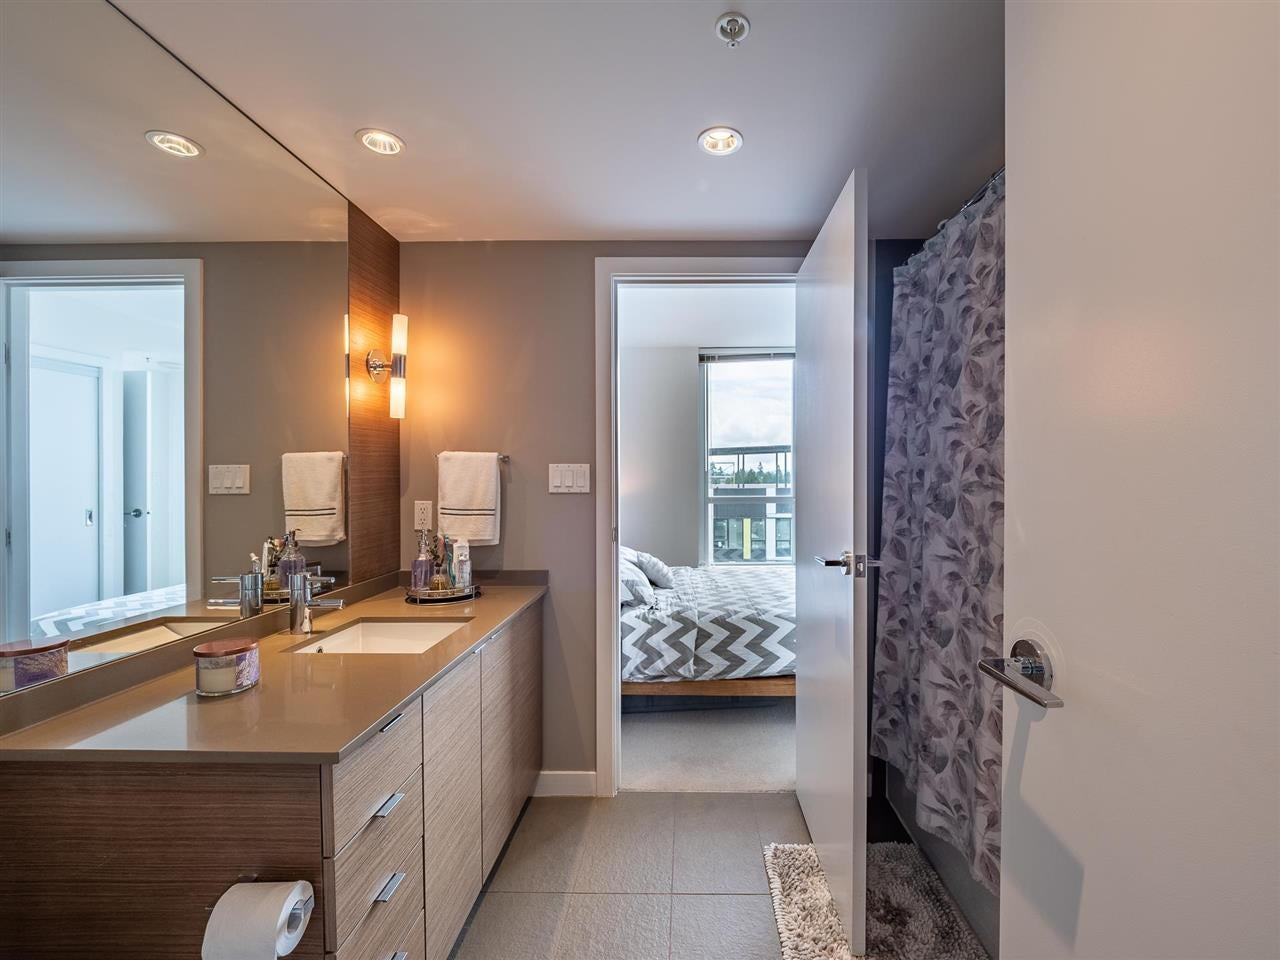 1607 135 E 17TH STREET - Central Lonsdale Apartment/Condo for sale, 1 Bedroom (R2603489) - #12